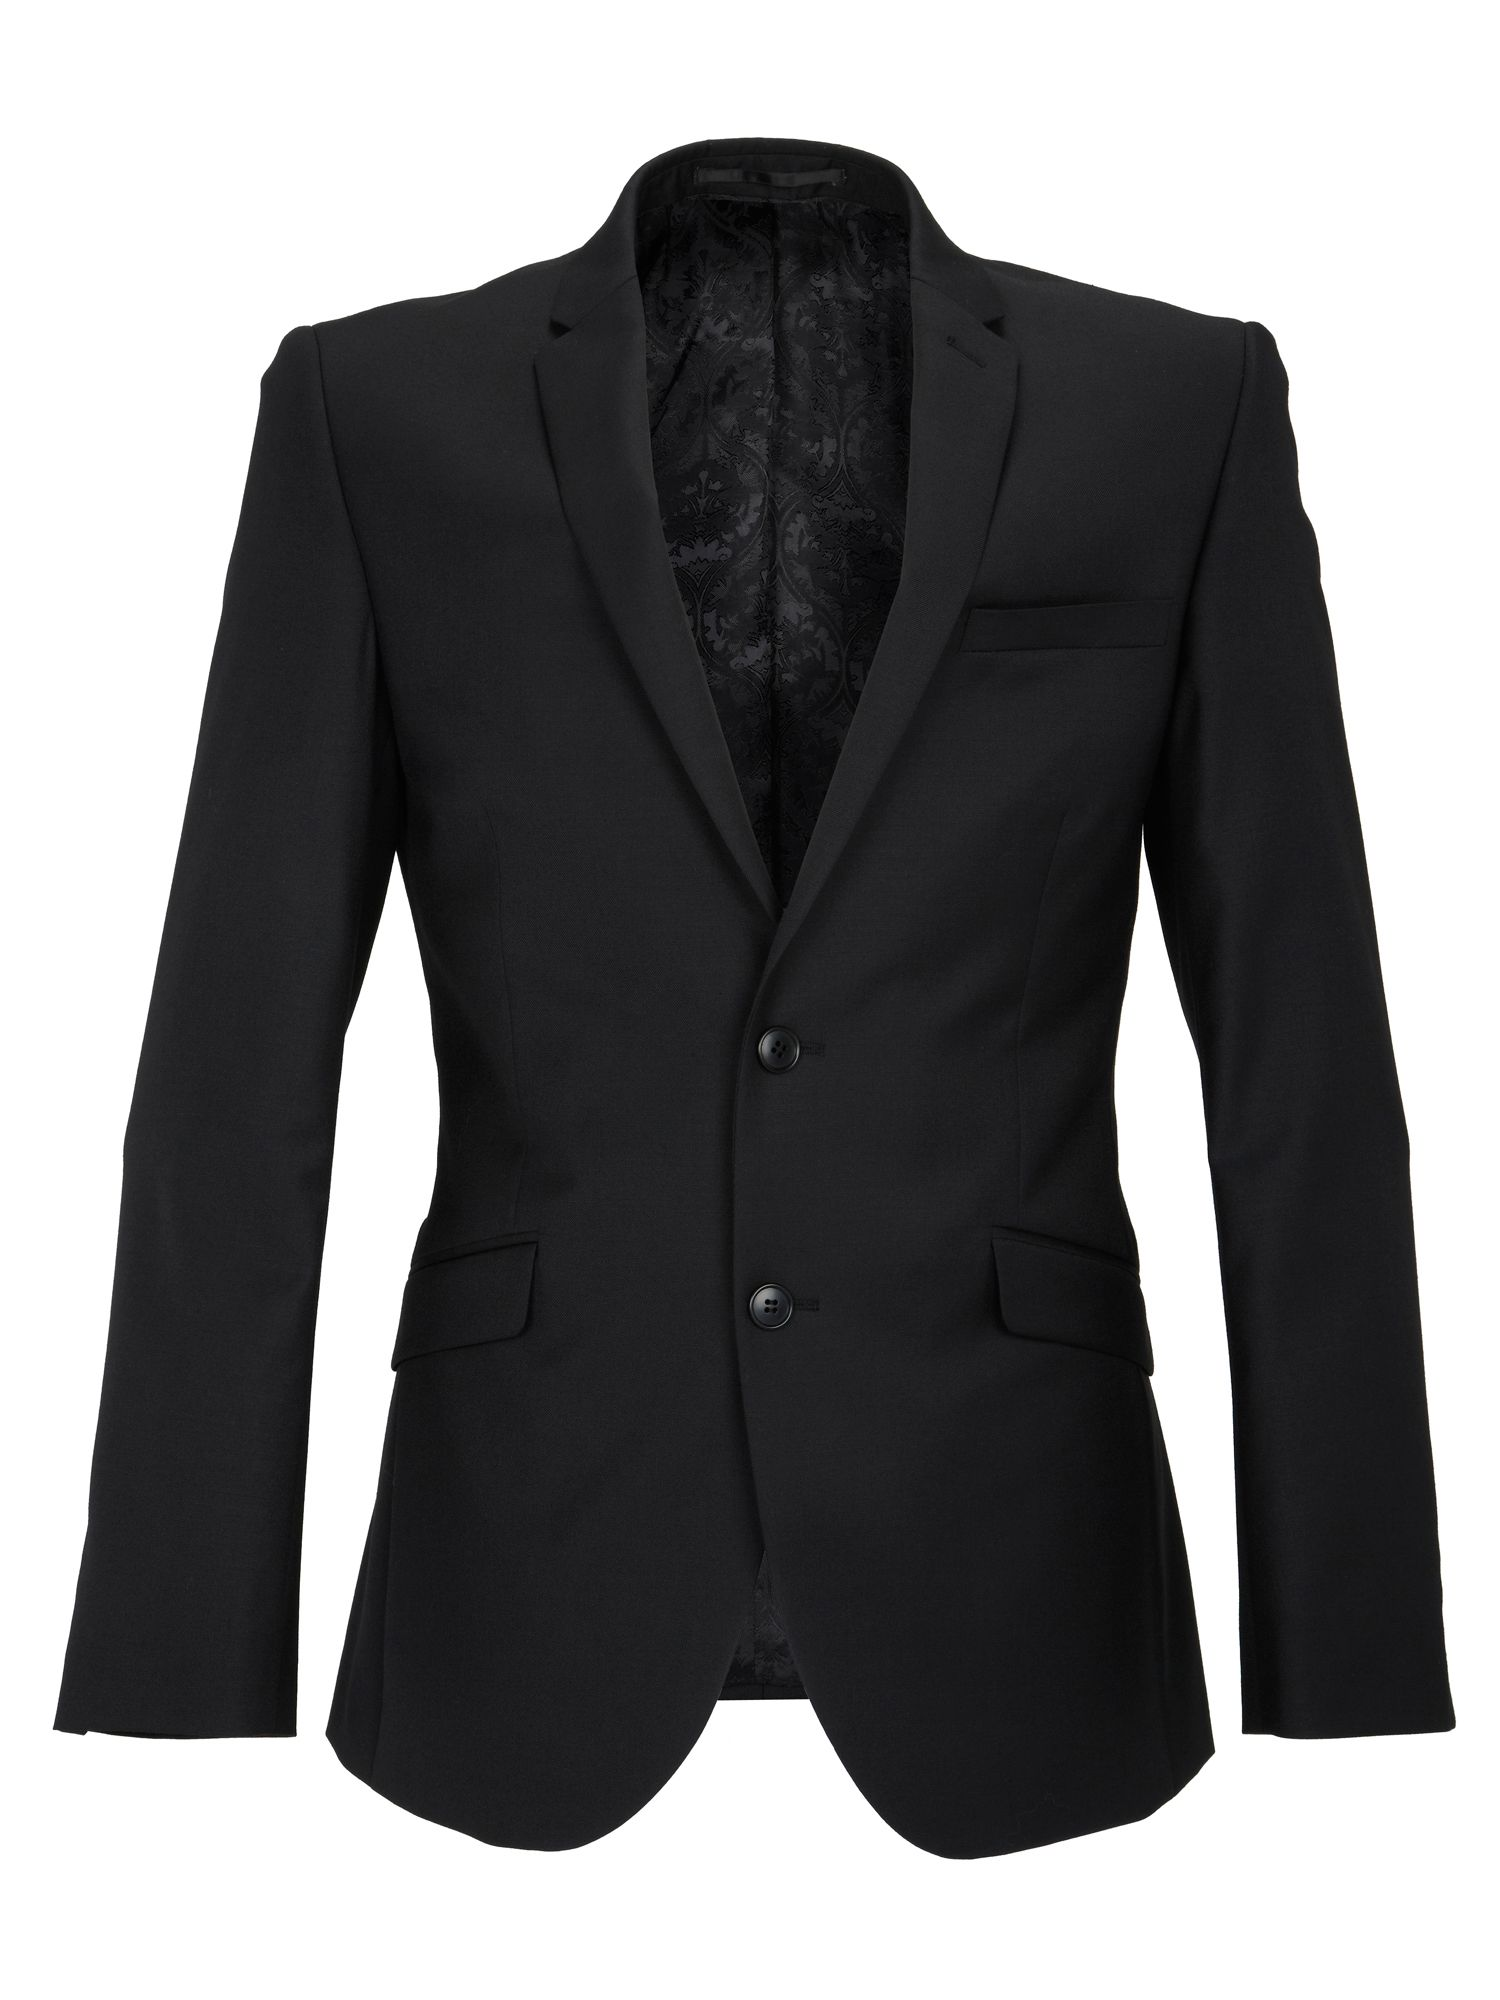 Plain Black Slimfit Jacket